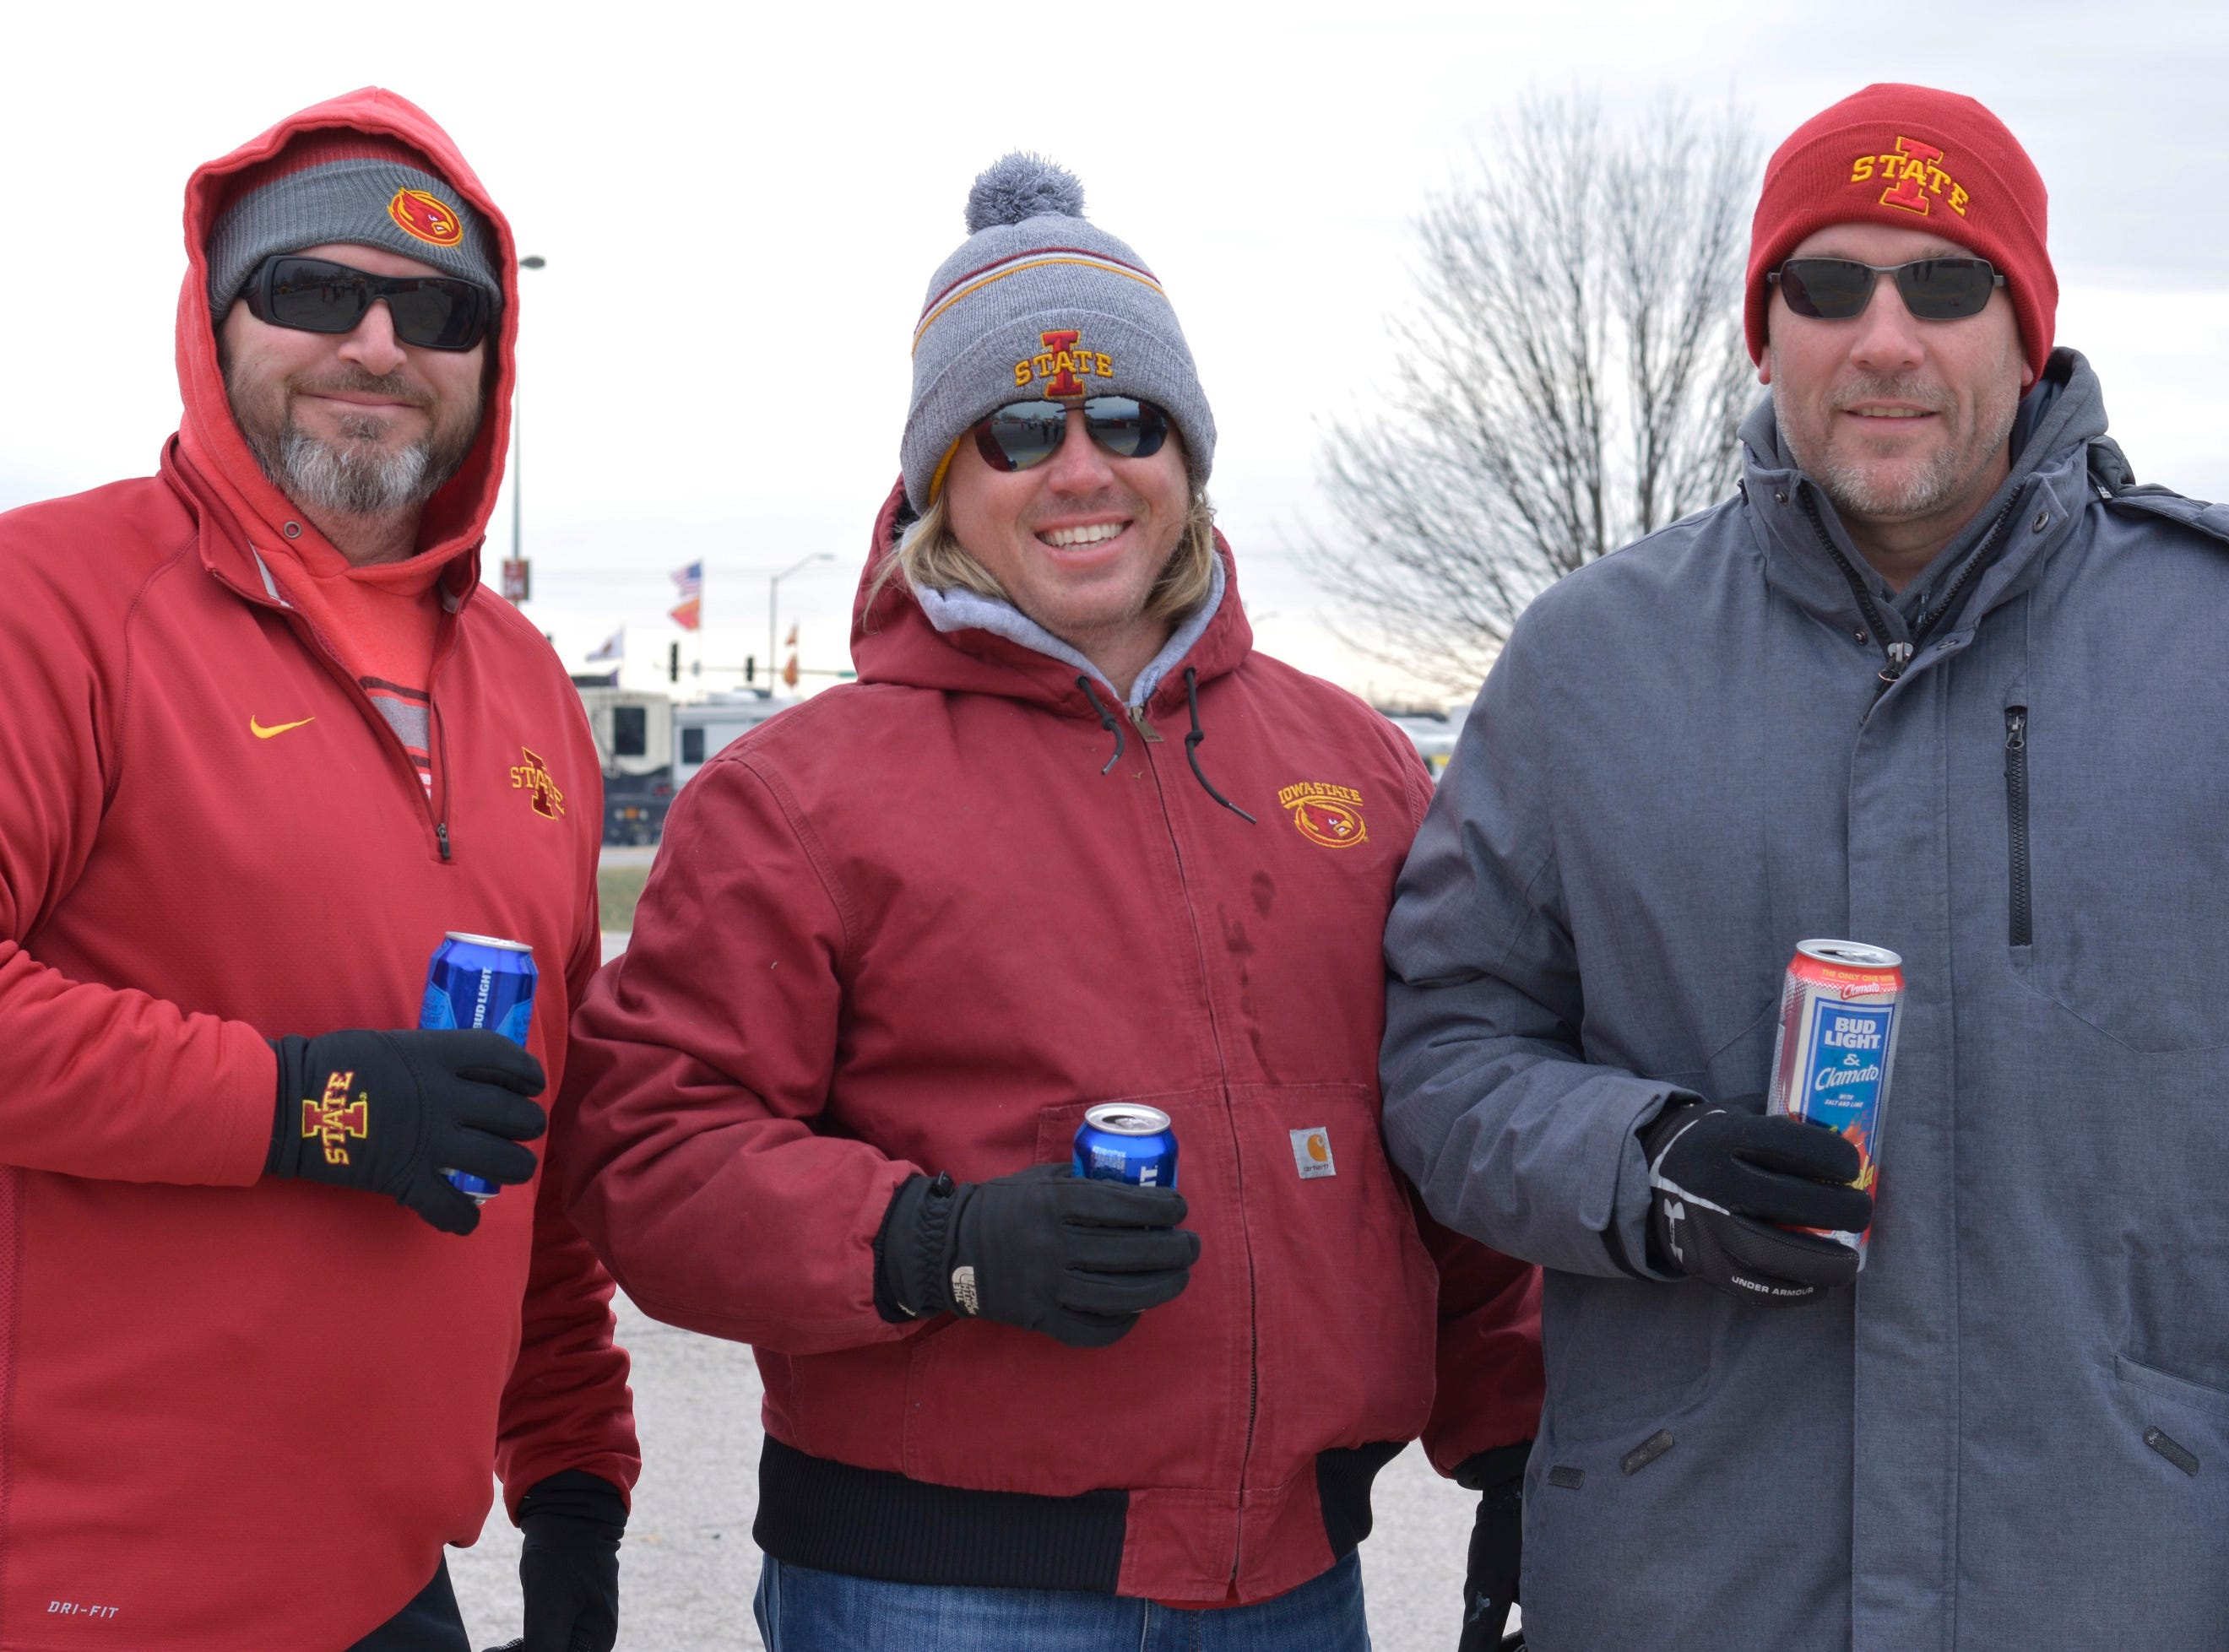 Rick Morgan (left), Jason Ammons (middle) and Chad Meyer (right) before the Iowa State University football game against Baylor in Ames on Nov. 10.